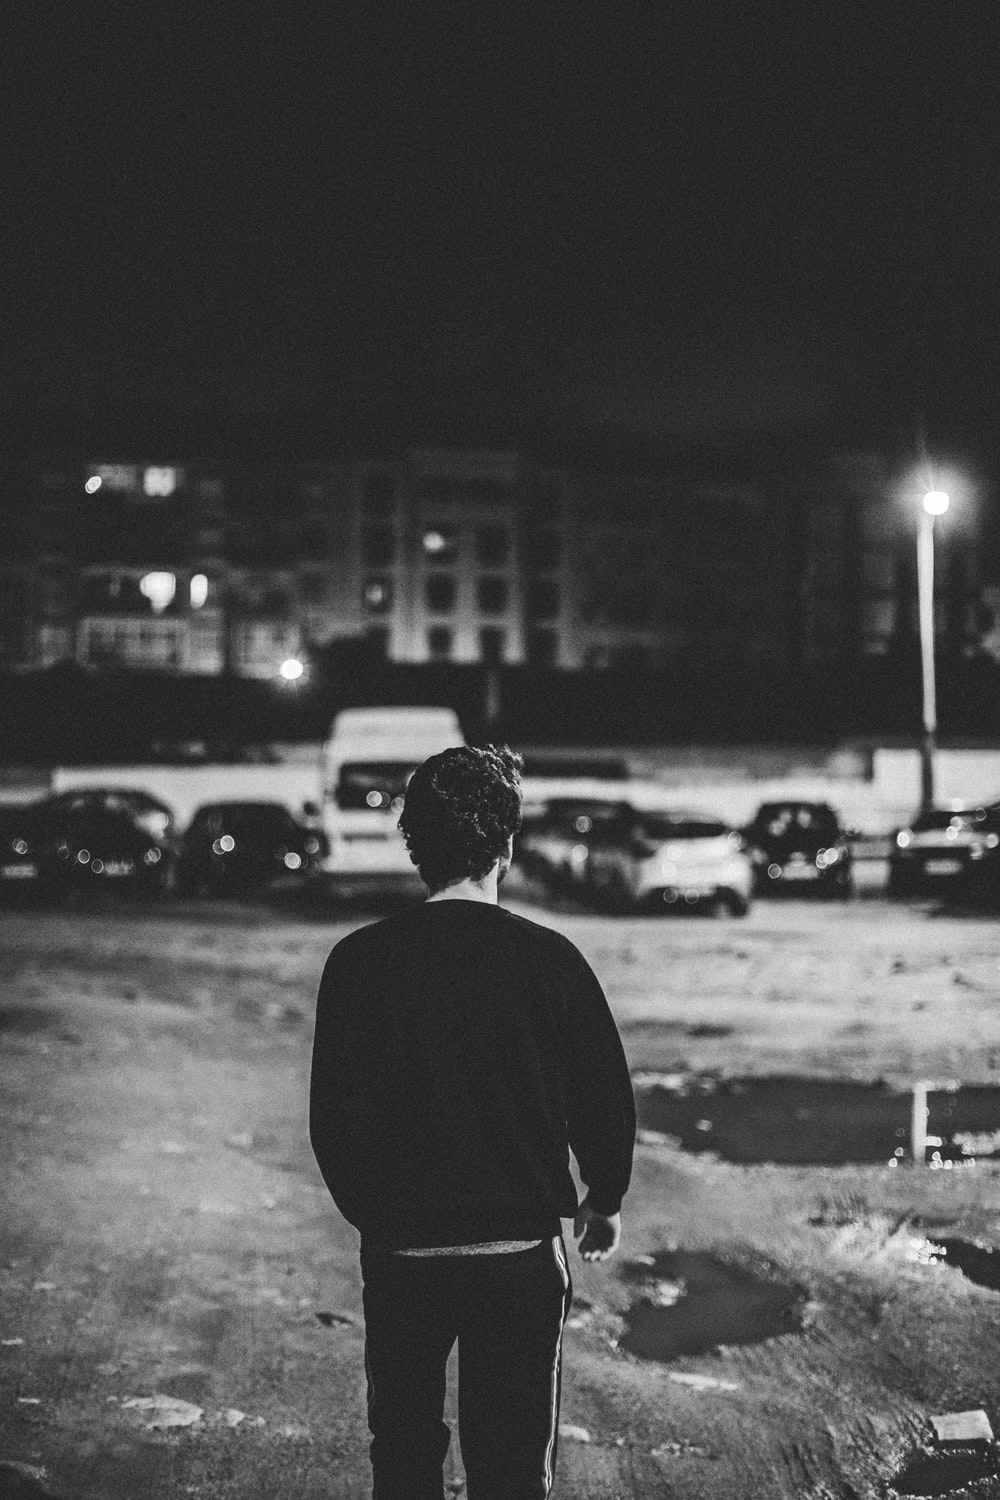 man in black long sleeve shirt standing on road during night time